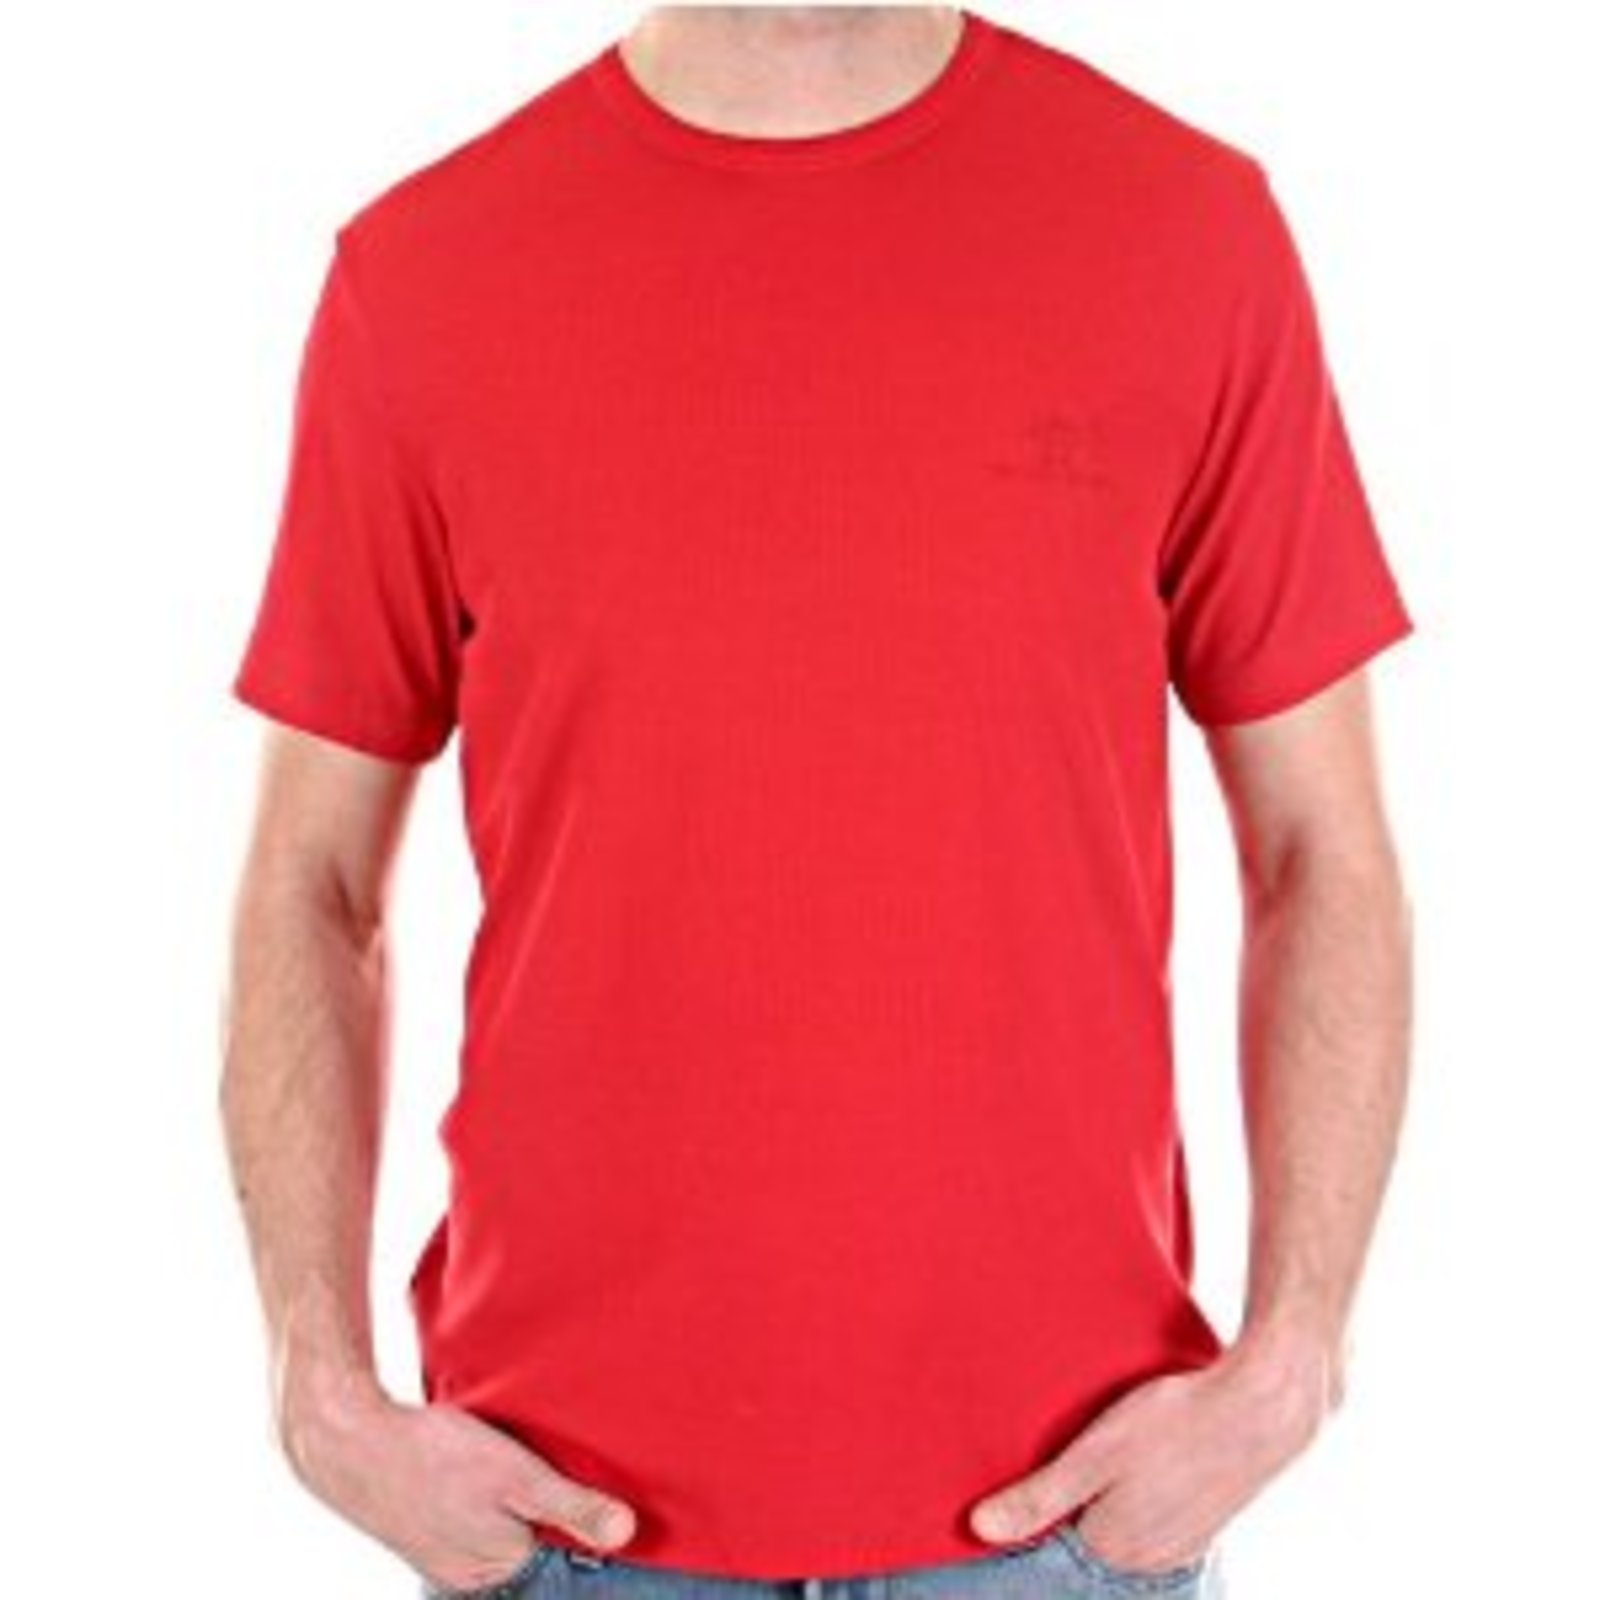 Enjoy free shipping and easy returns every day at Kohl's. Find great deals on Mens Red Dress Shirts Tops at Kohl's today!